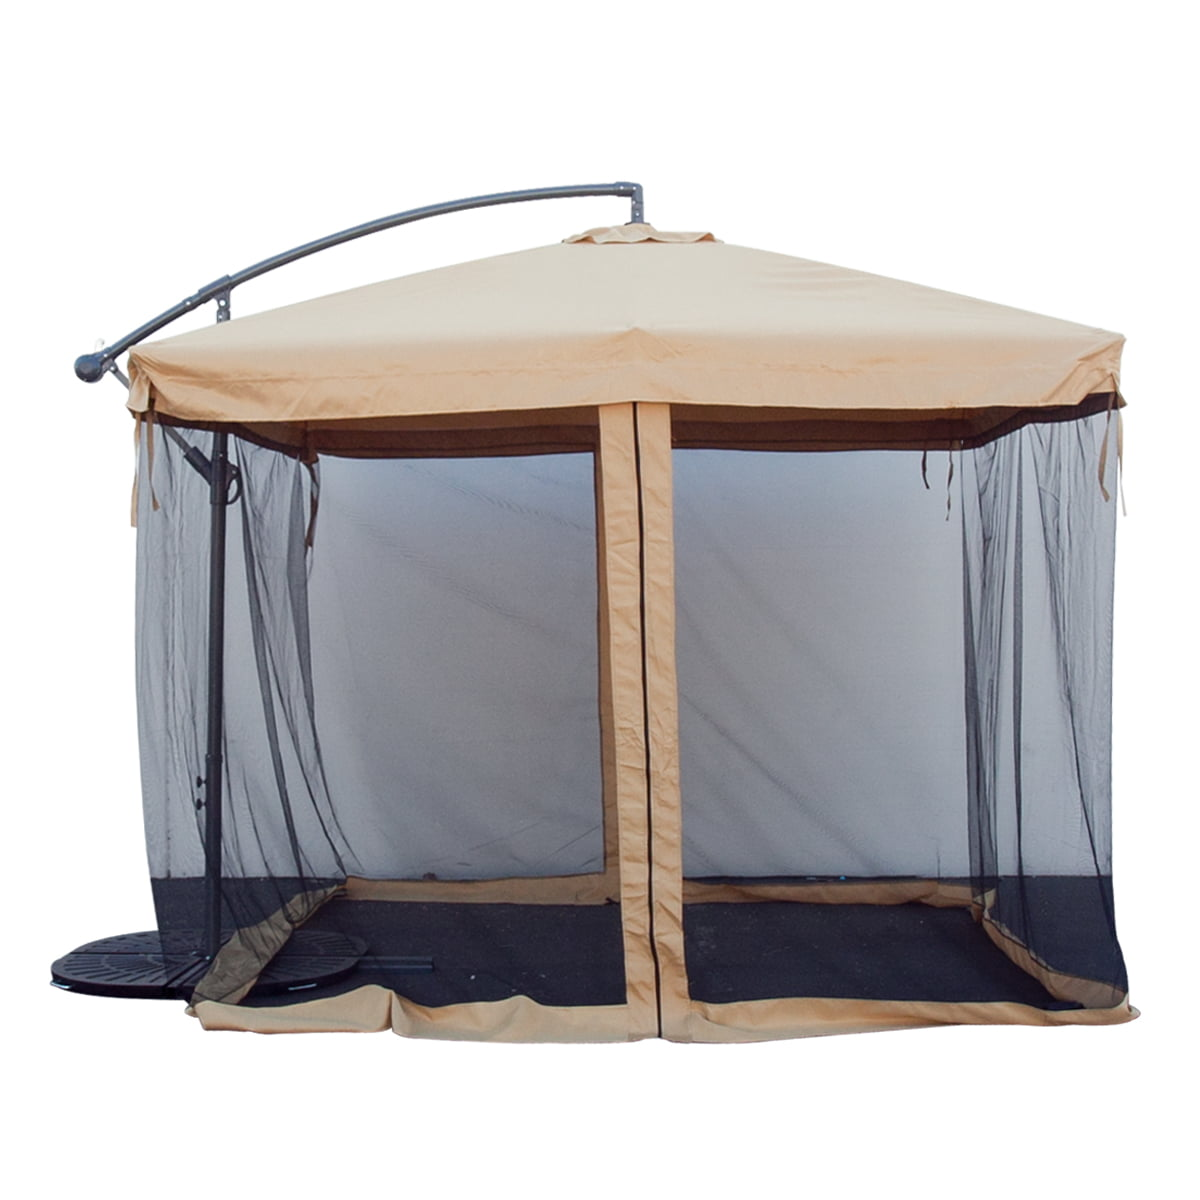 Apontus Offset Tan Patio Umbrella Instant Gazebo With Mesh Netting